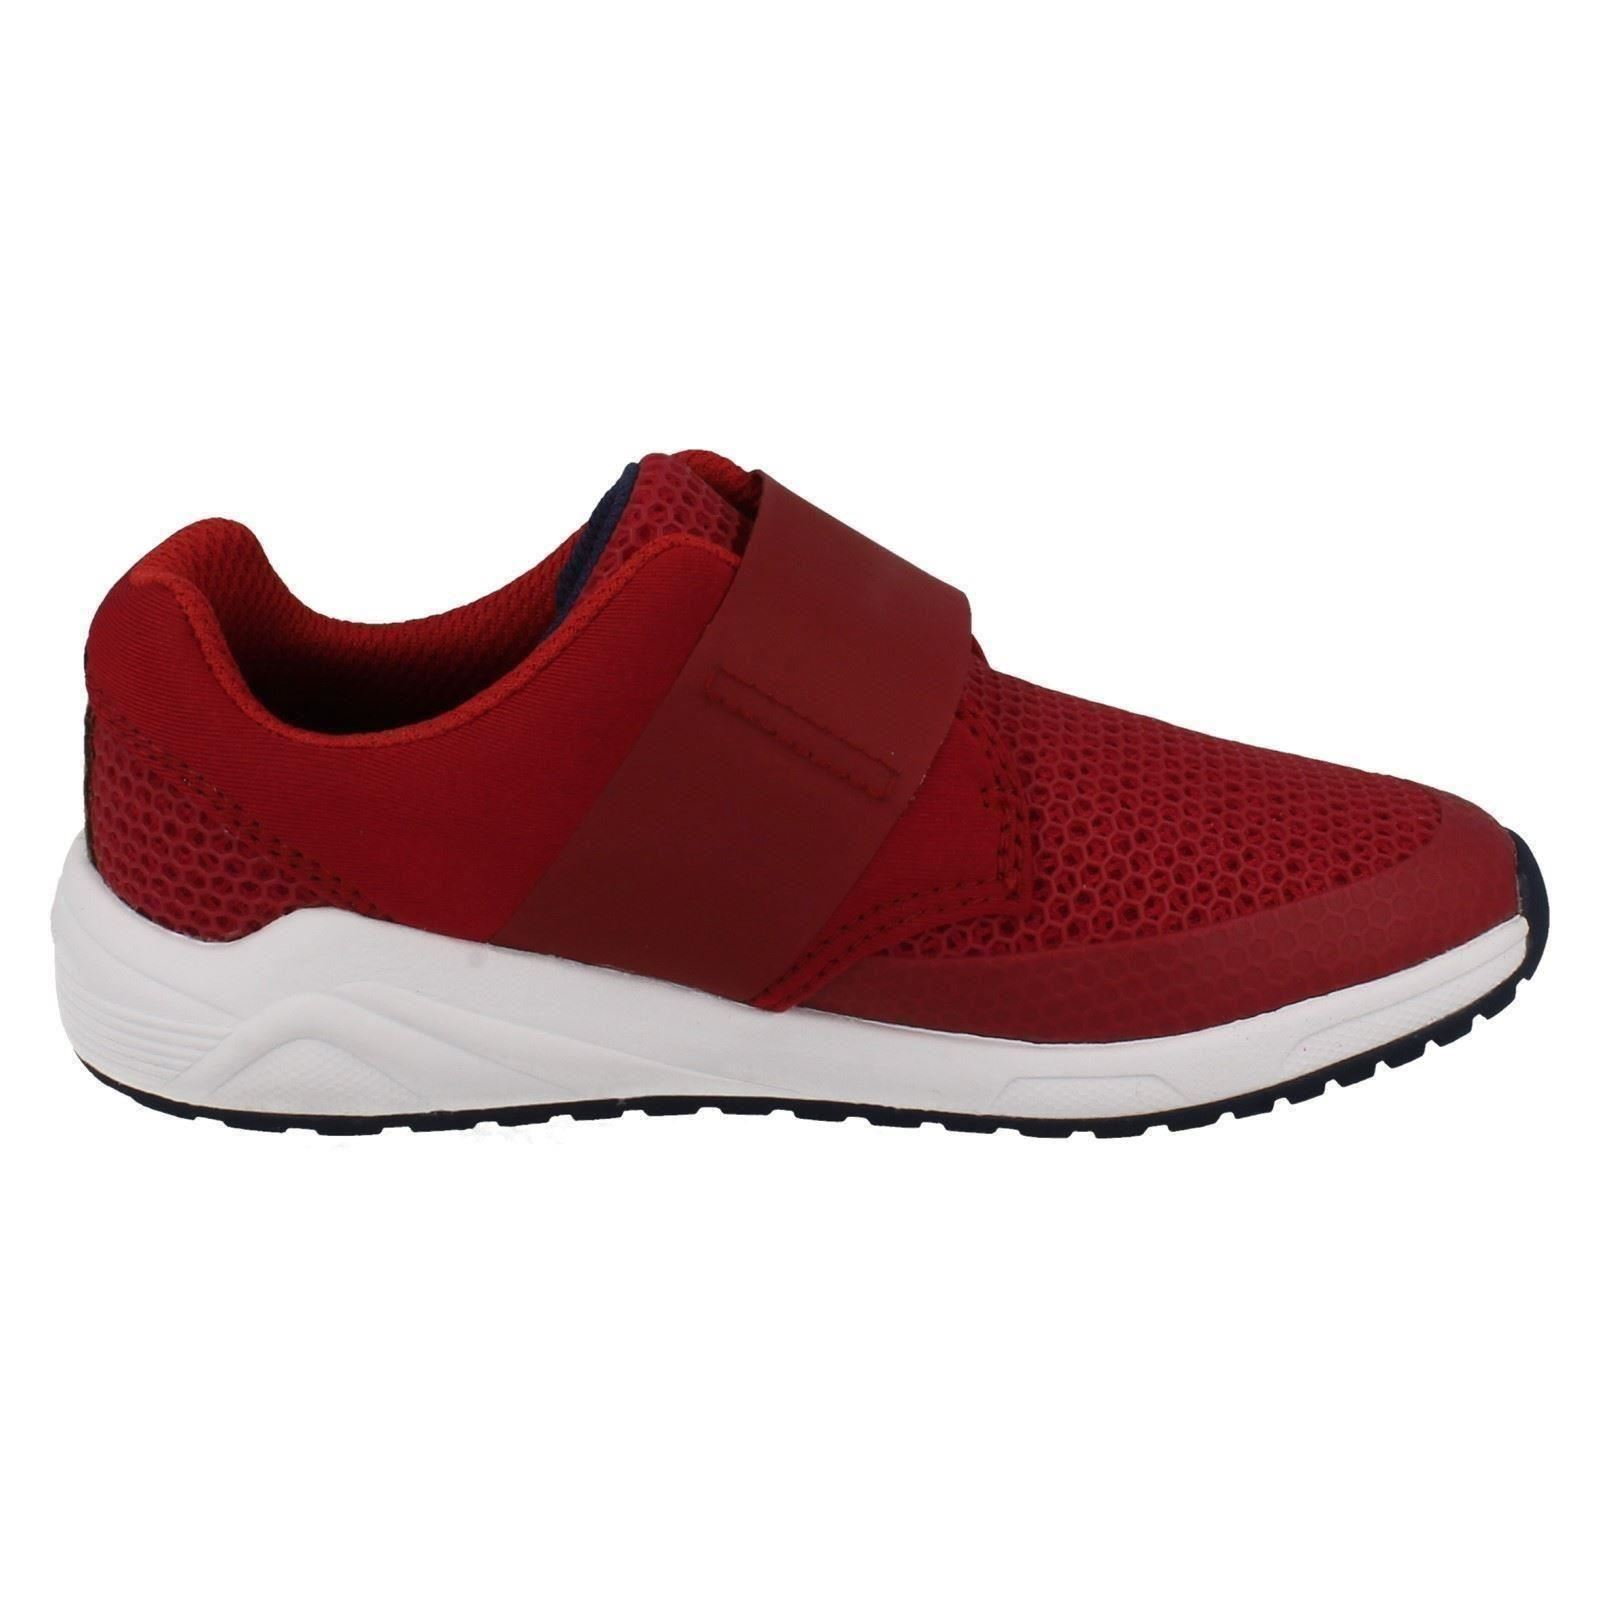 Boys Clarks Casual Trainers *Frisby Ace*